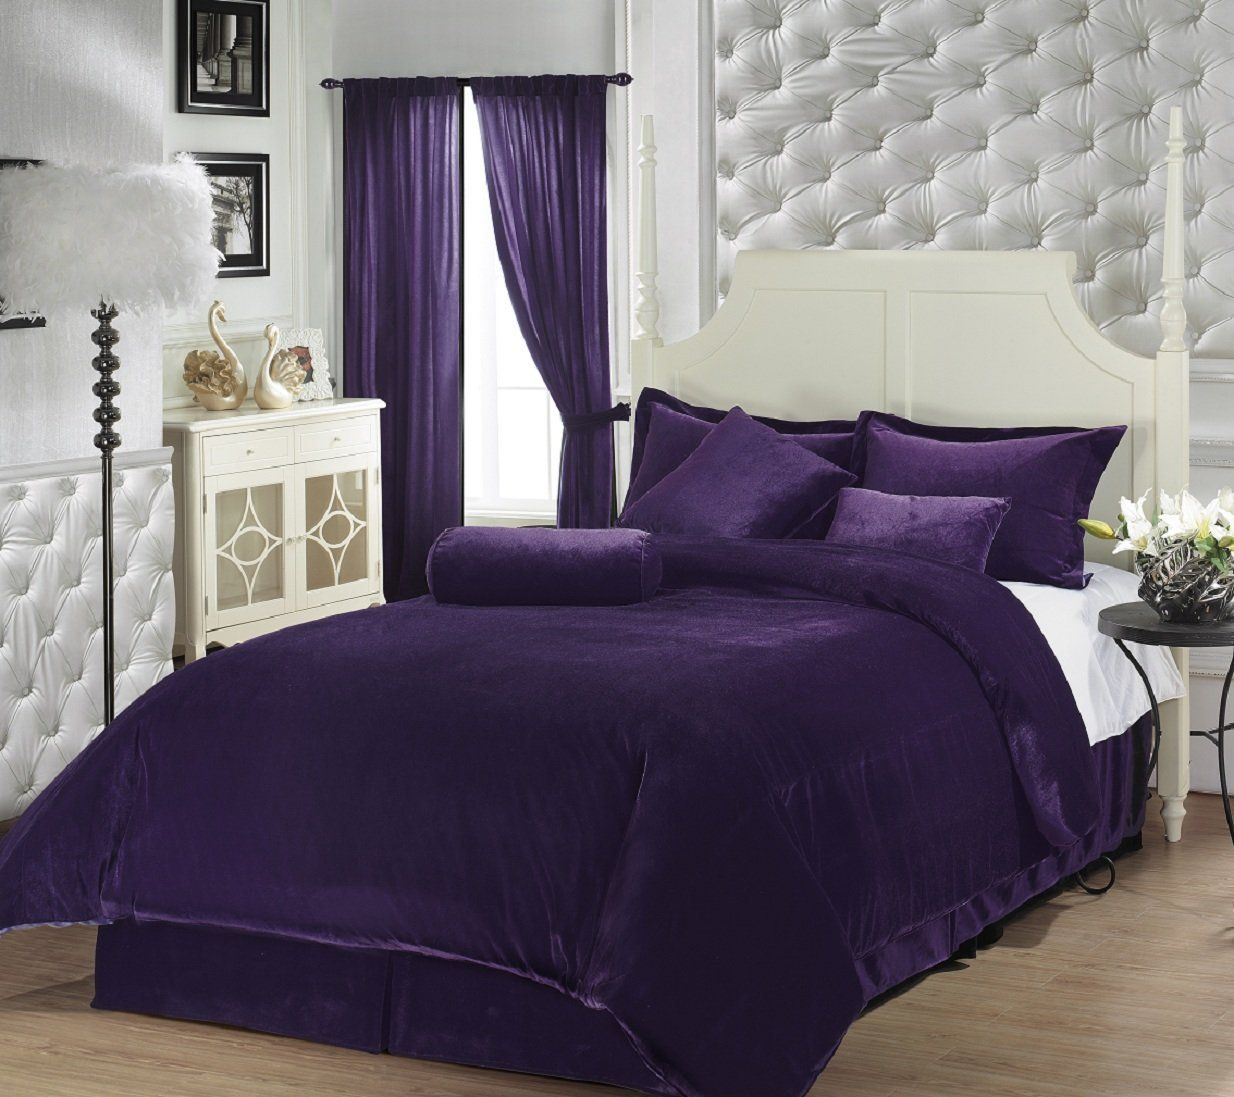 Black and purple bed sets - Purple Bedroom Best Purple Bedroom Ideas